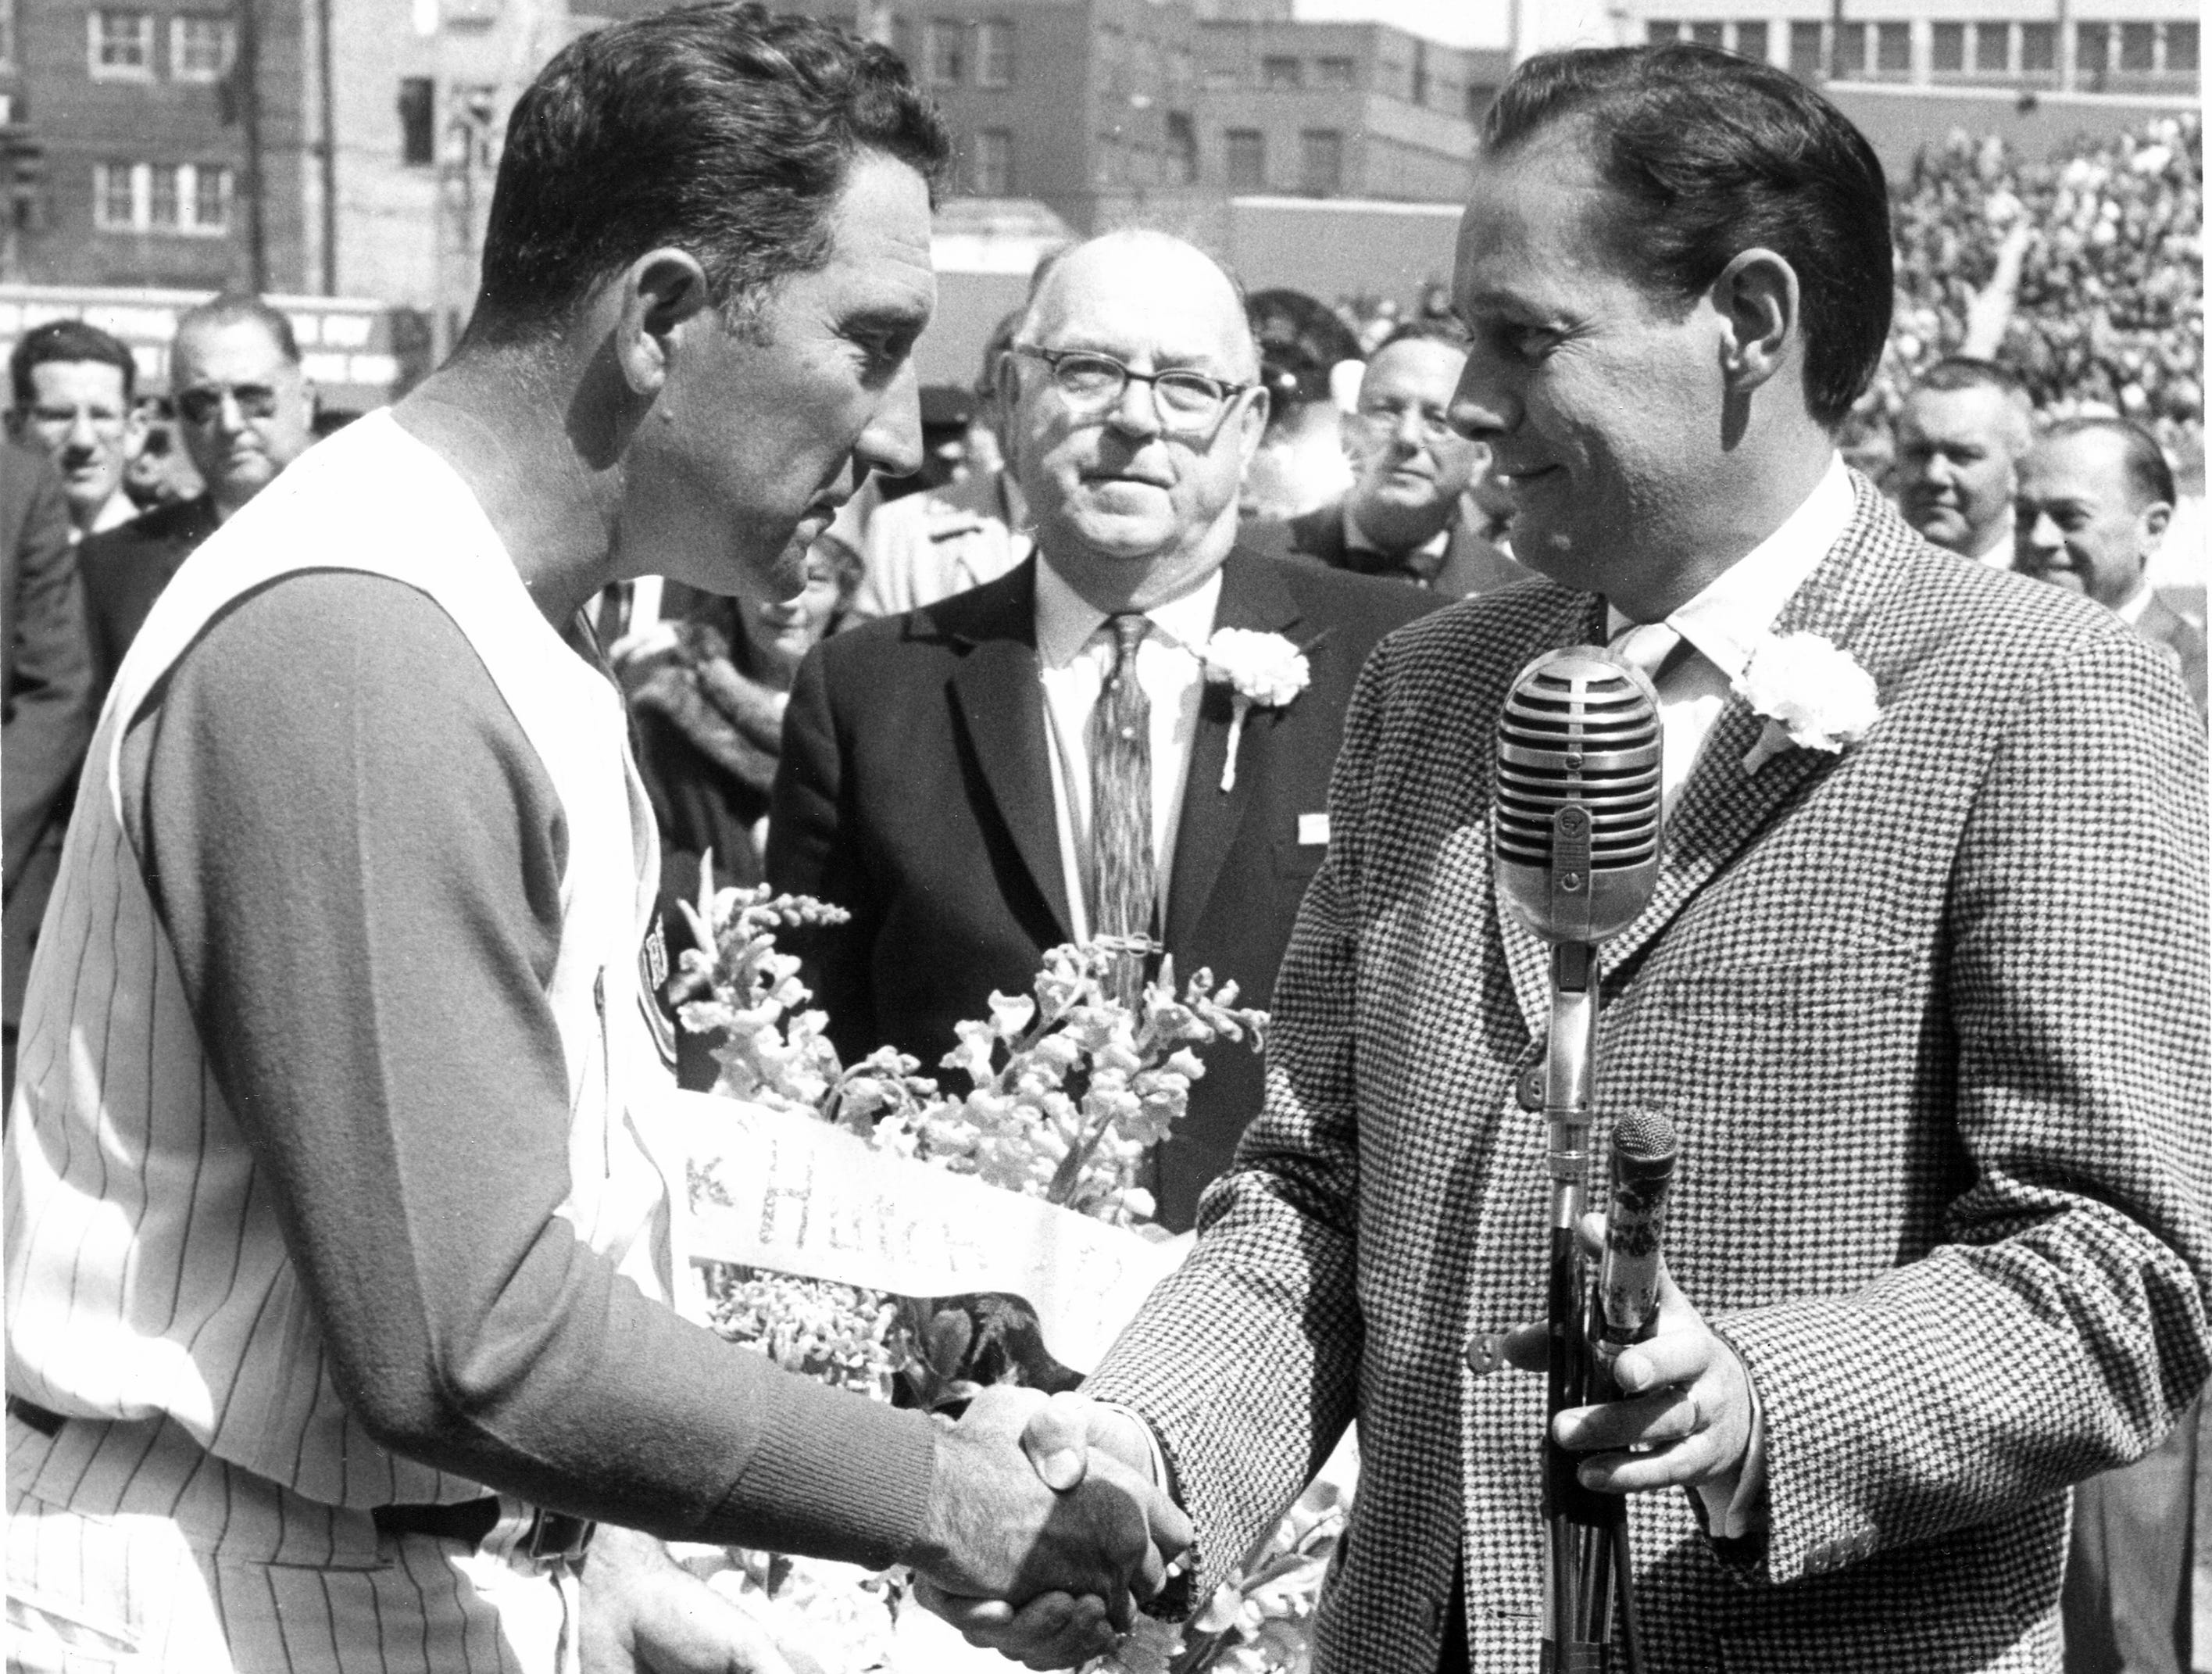 Former Reds manager Fred Hutchinson, left, during Frindlay Market Opening Day Parade in 1961.